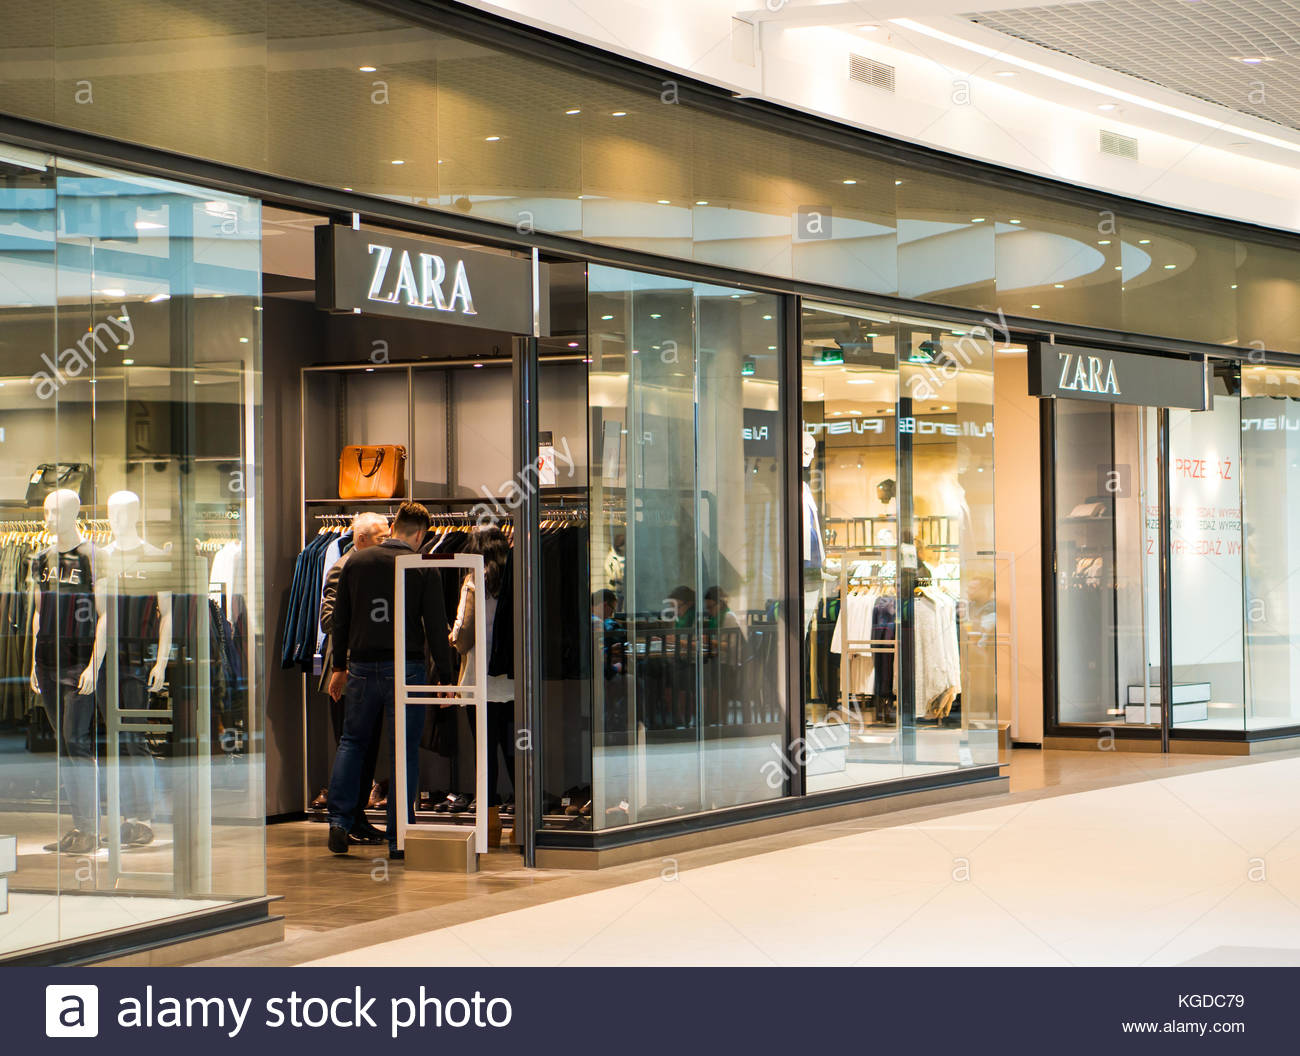 zara store entrance stock photos zara store entrance stock images alamy. Black Bedroom Furniture Sets. Home Design Ideas